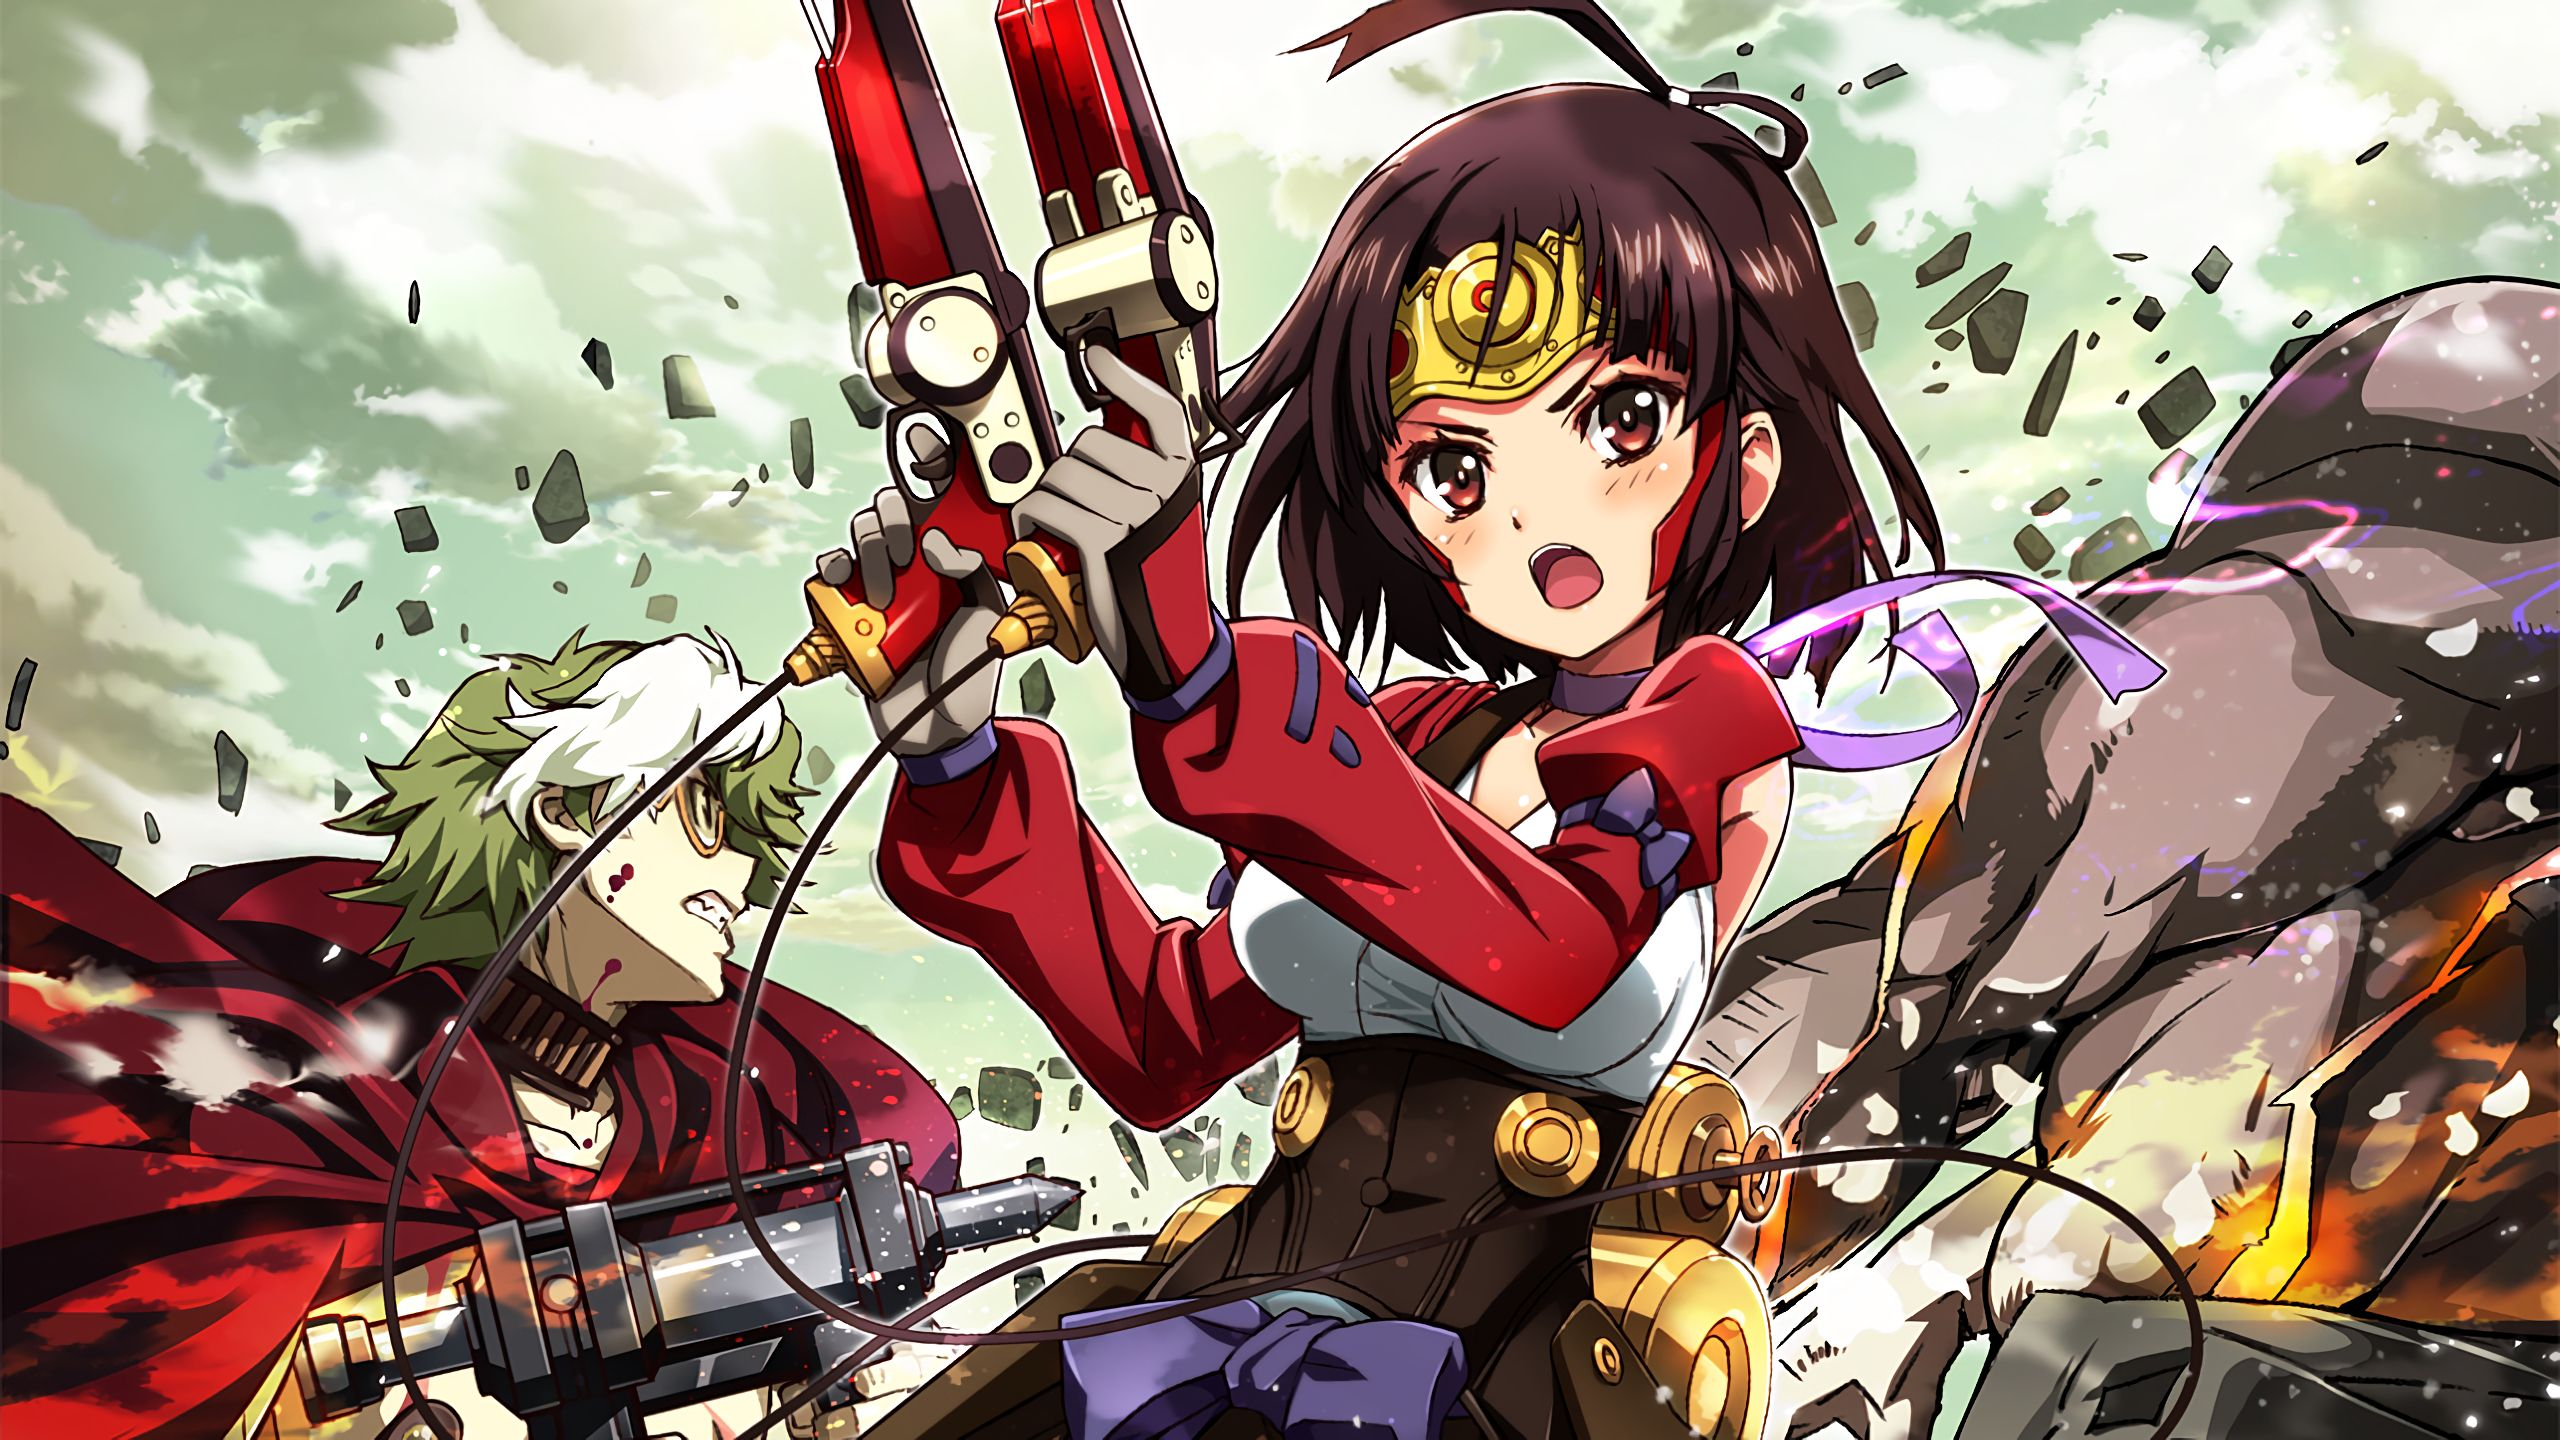 Kabaneri Of The Iron Fortress Wallpaper: Anime Kabaneri Of The Iron Fortress Wallpaper